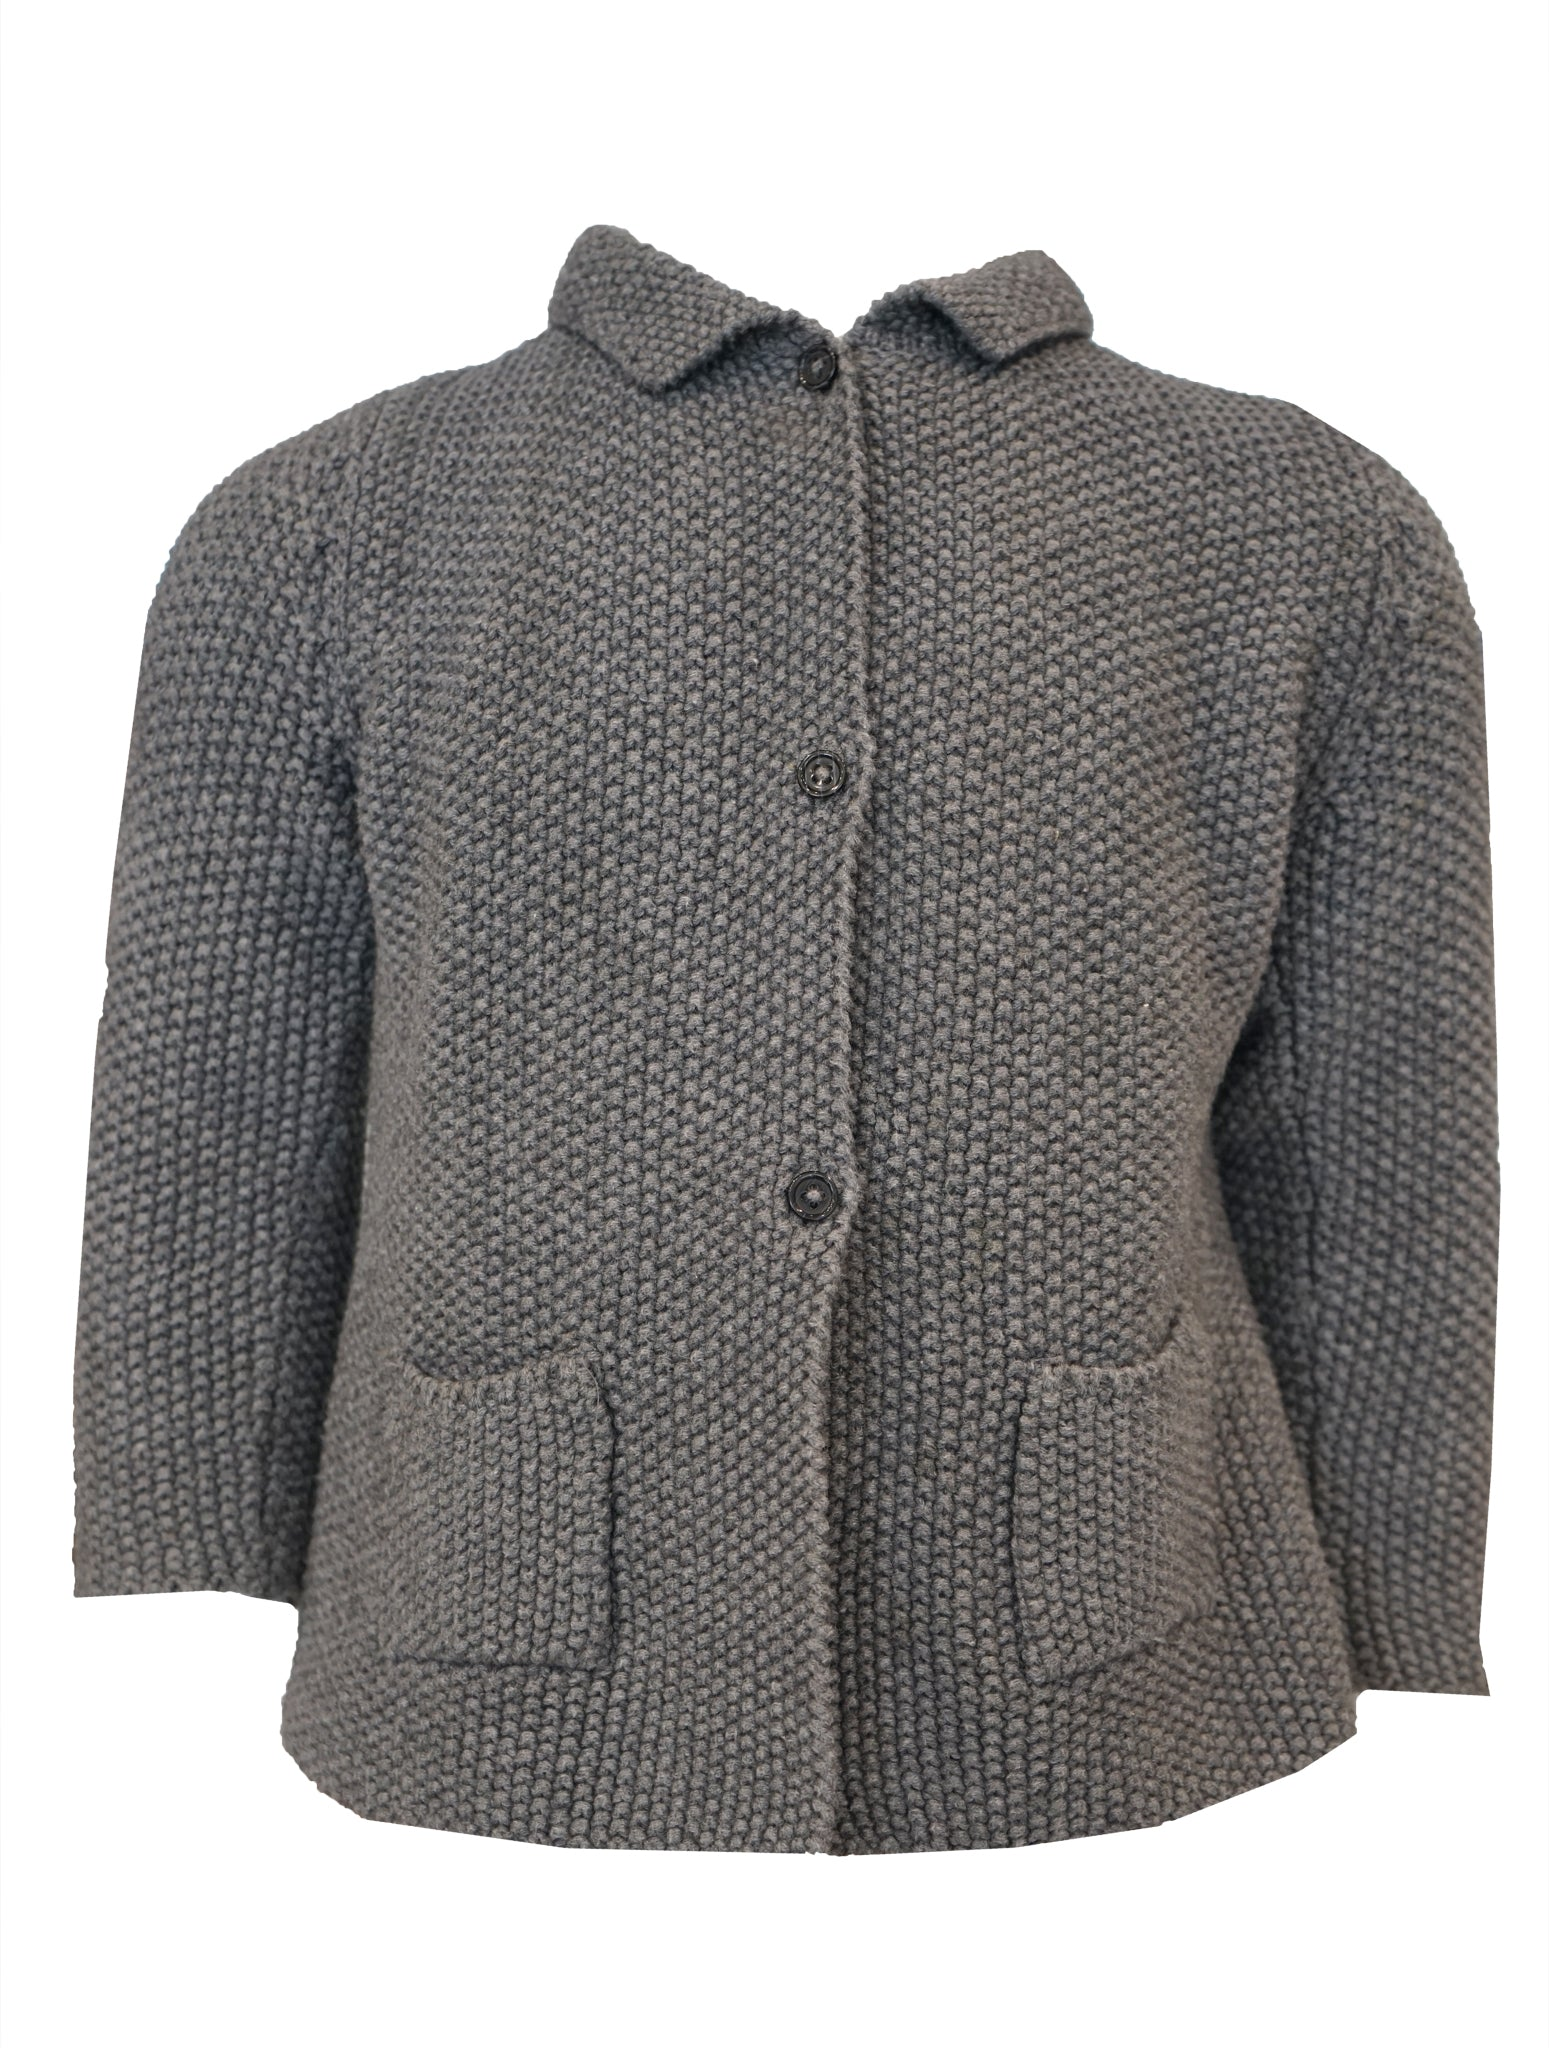 VESTE KNITTED CARDIGAN JACKET